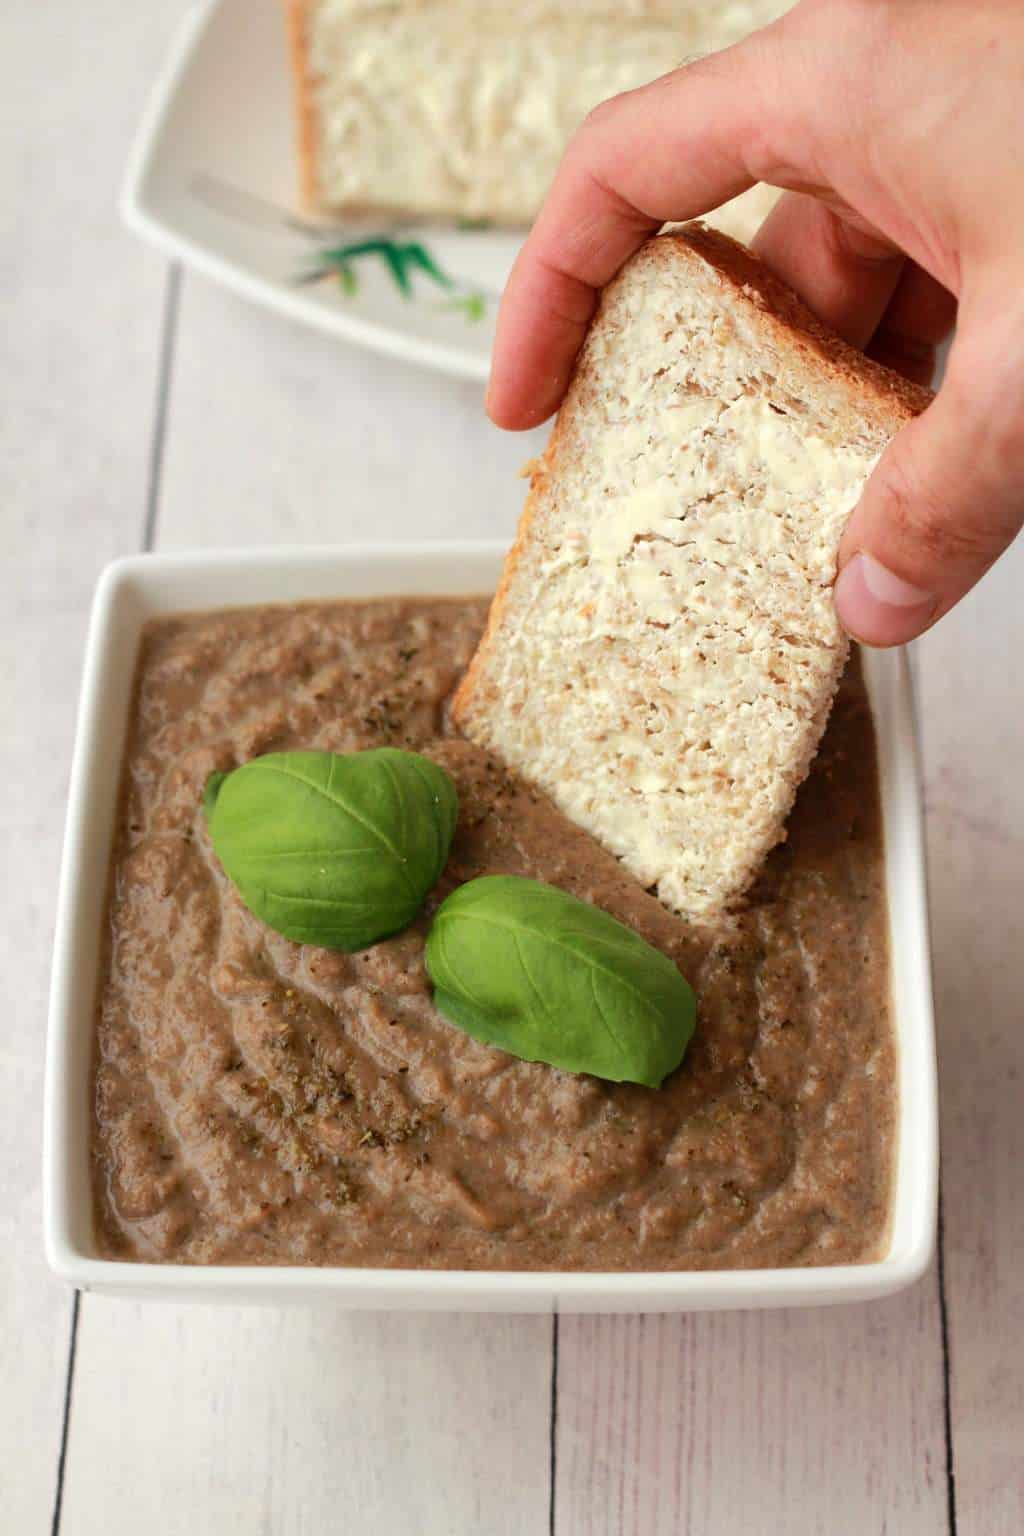 Vegan Cream of Mushroom Soup #vegan #lovingitvegan #appetizer #mushroomsoup #glutenfree